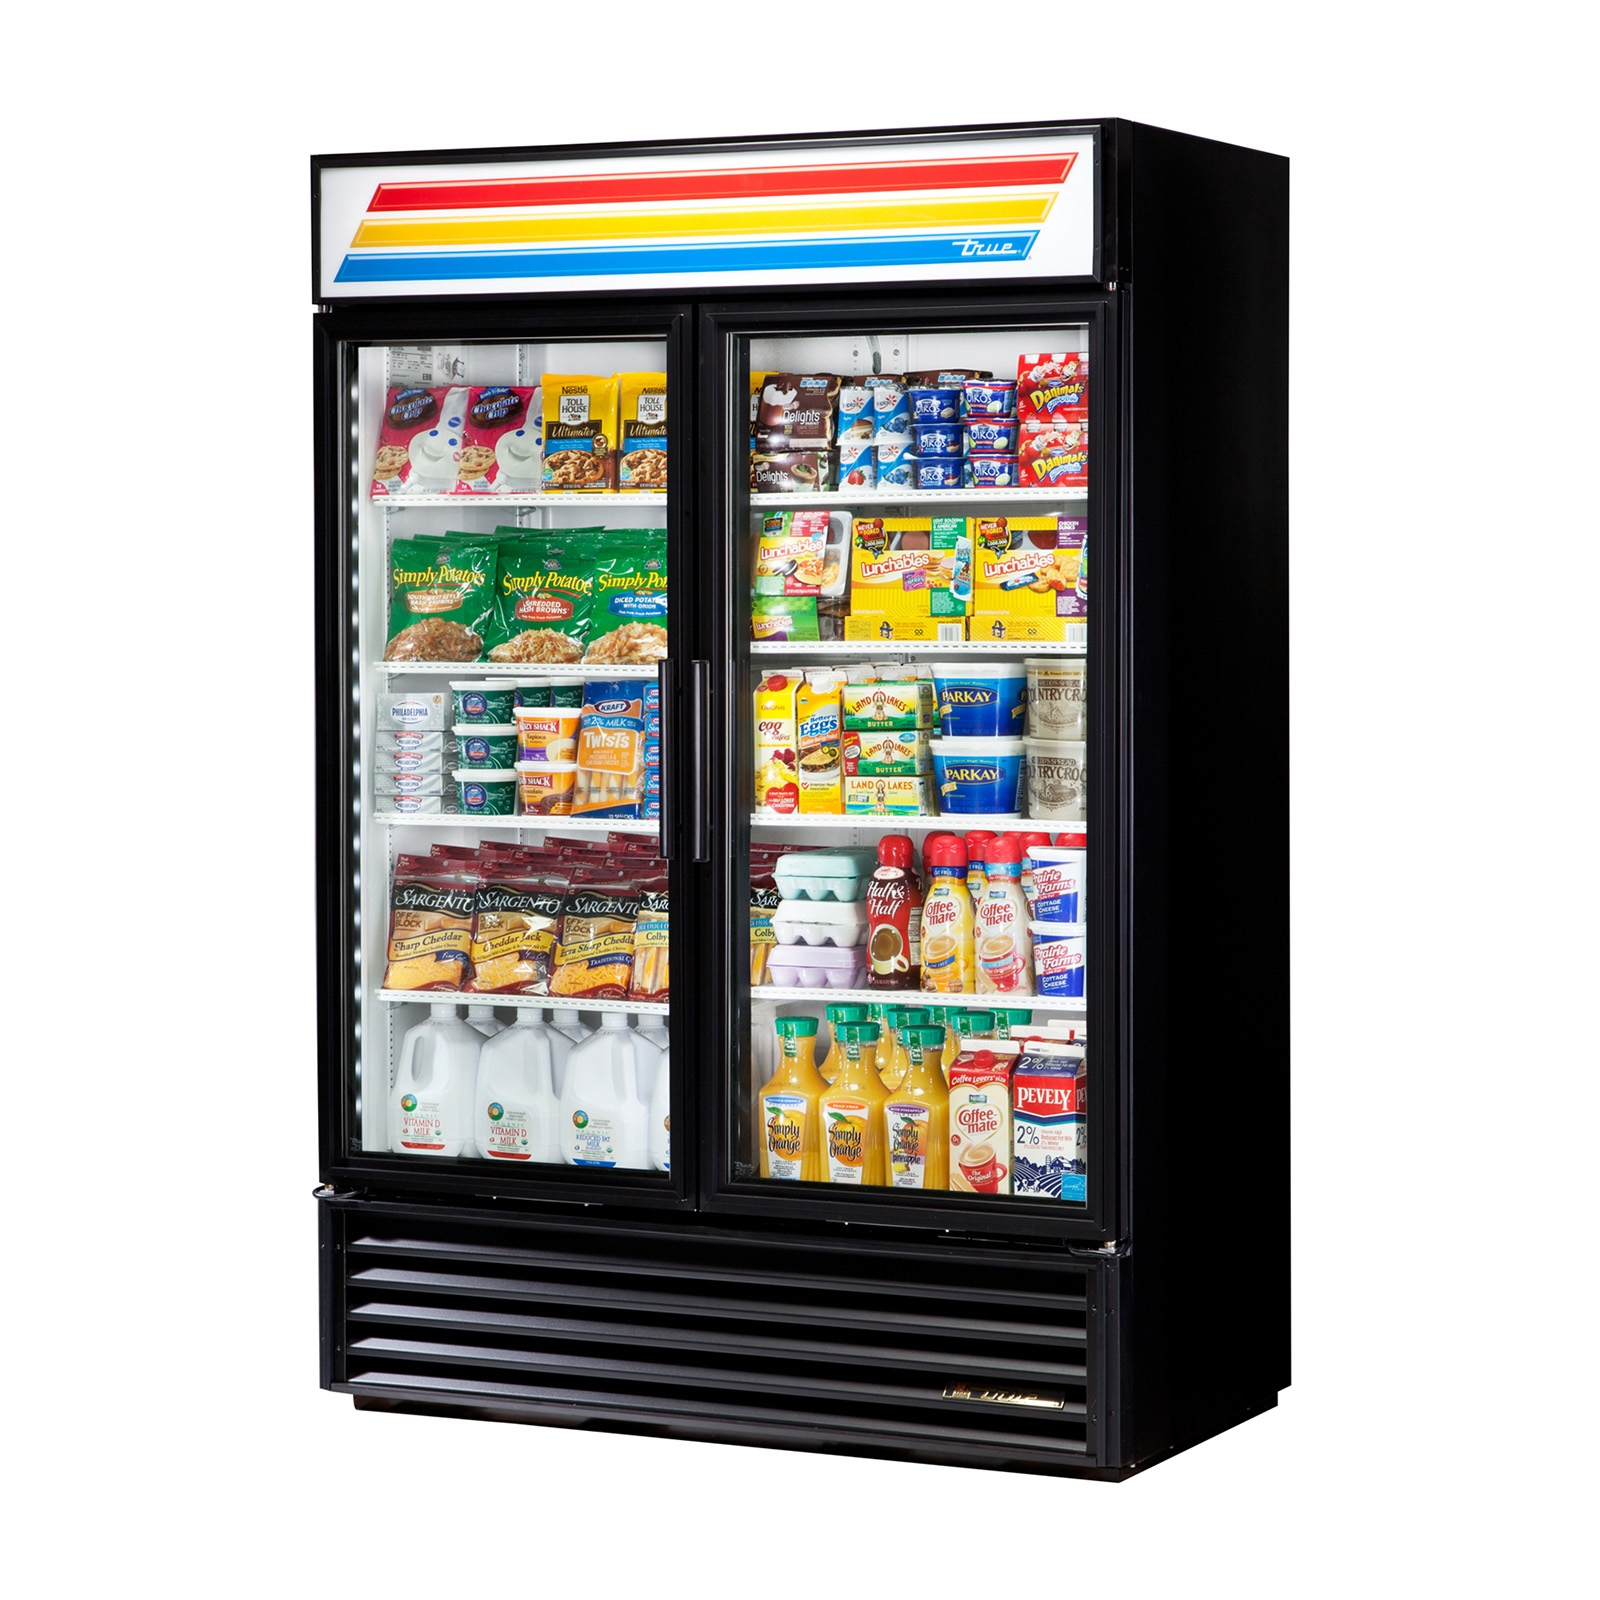 GDM-49-LD – True Display Refrigerator